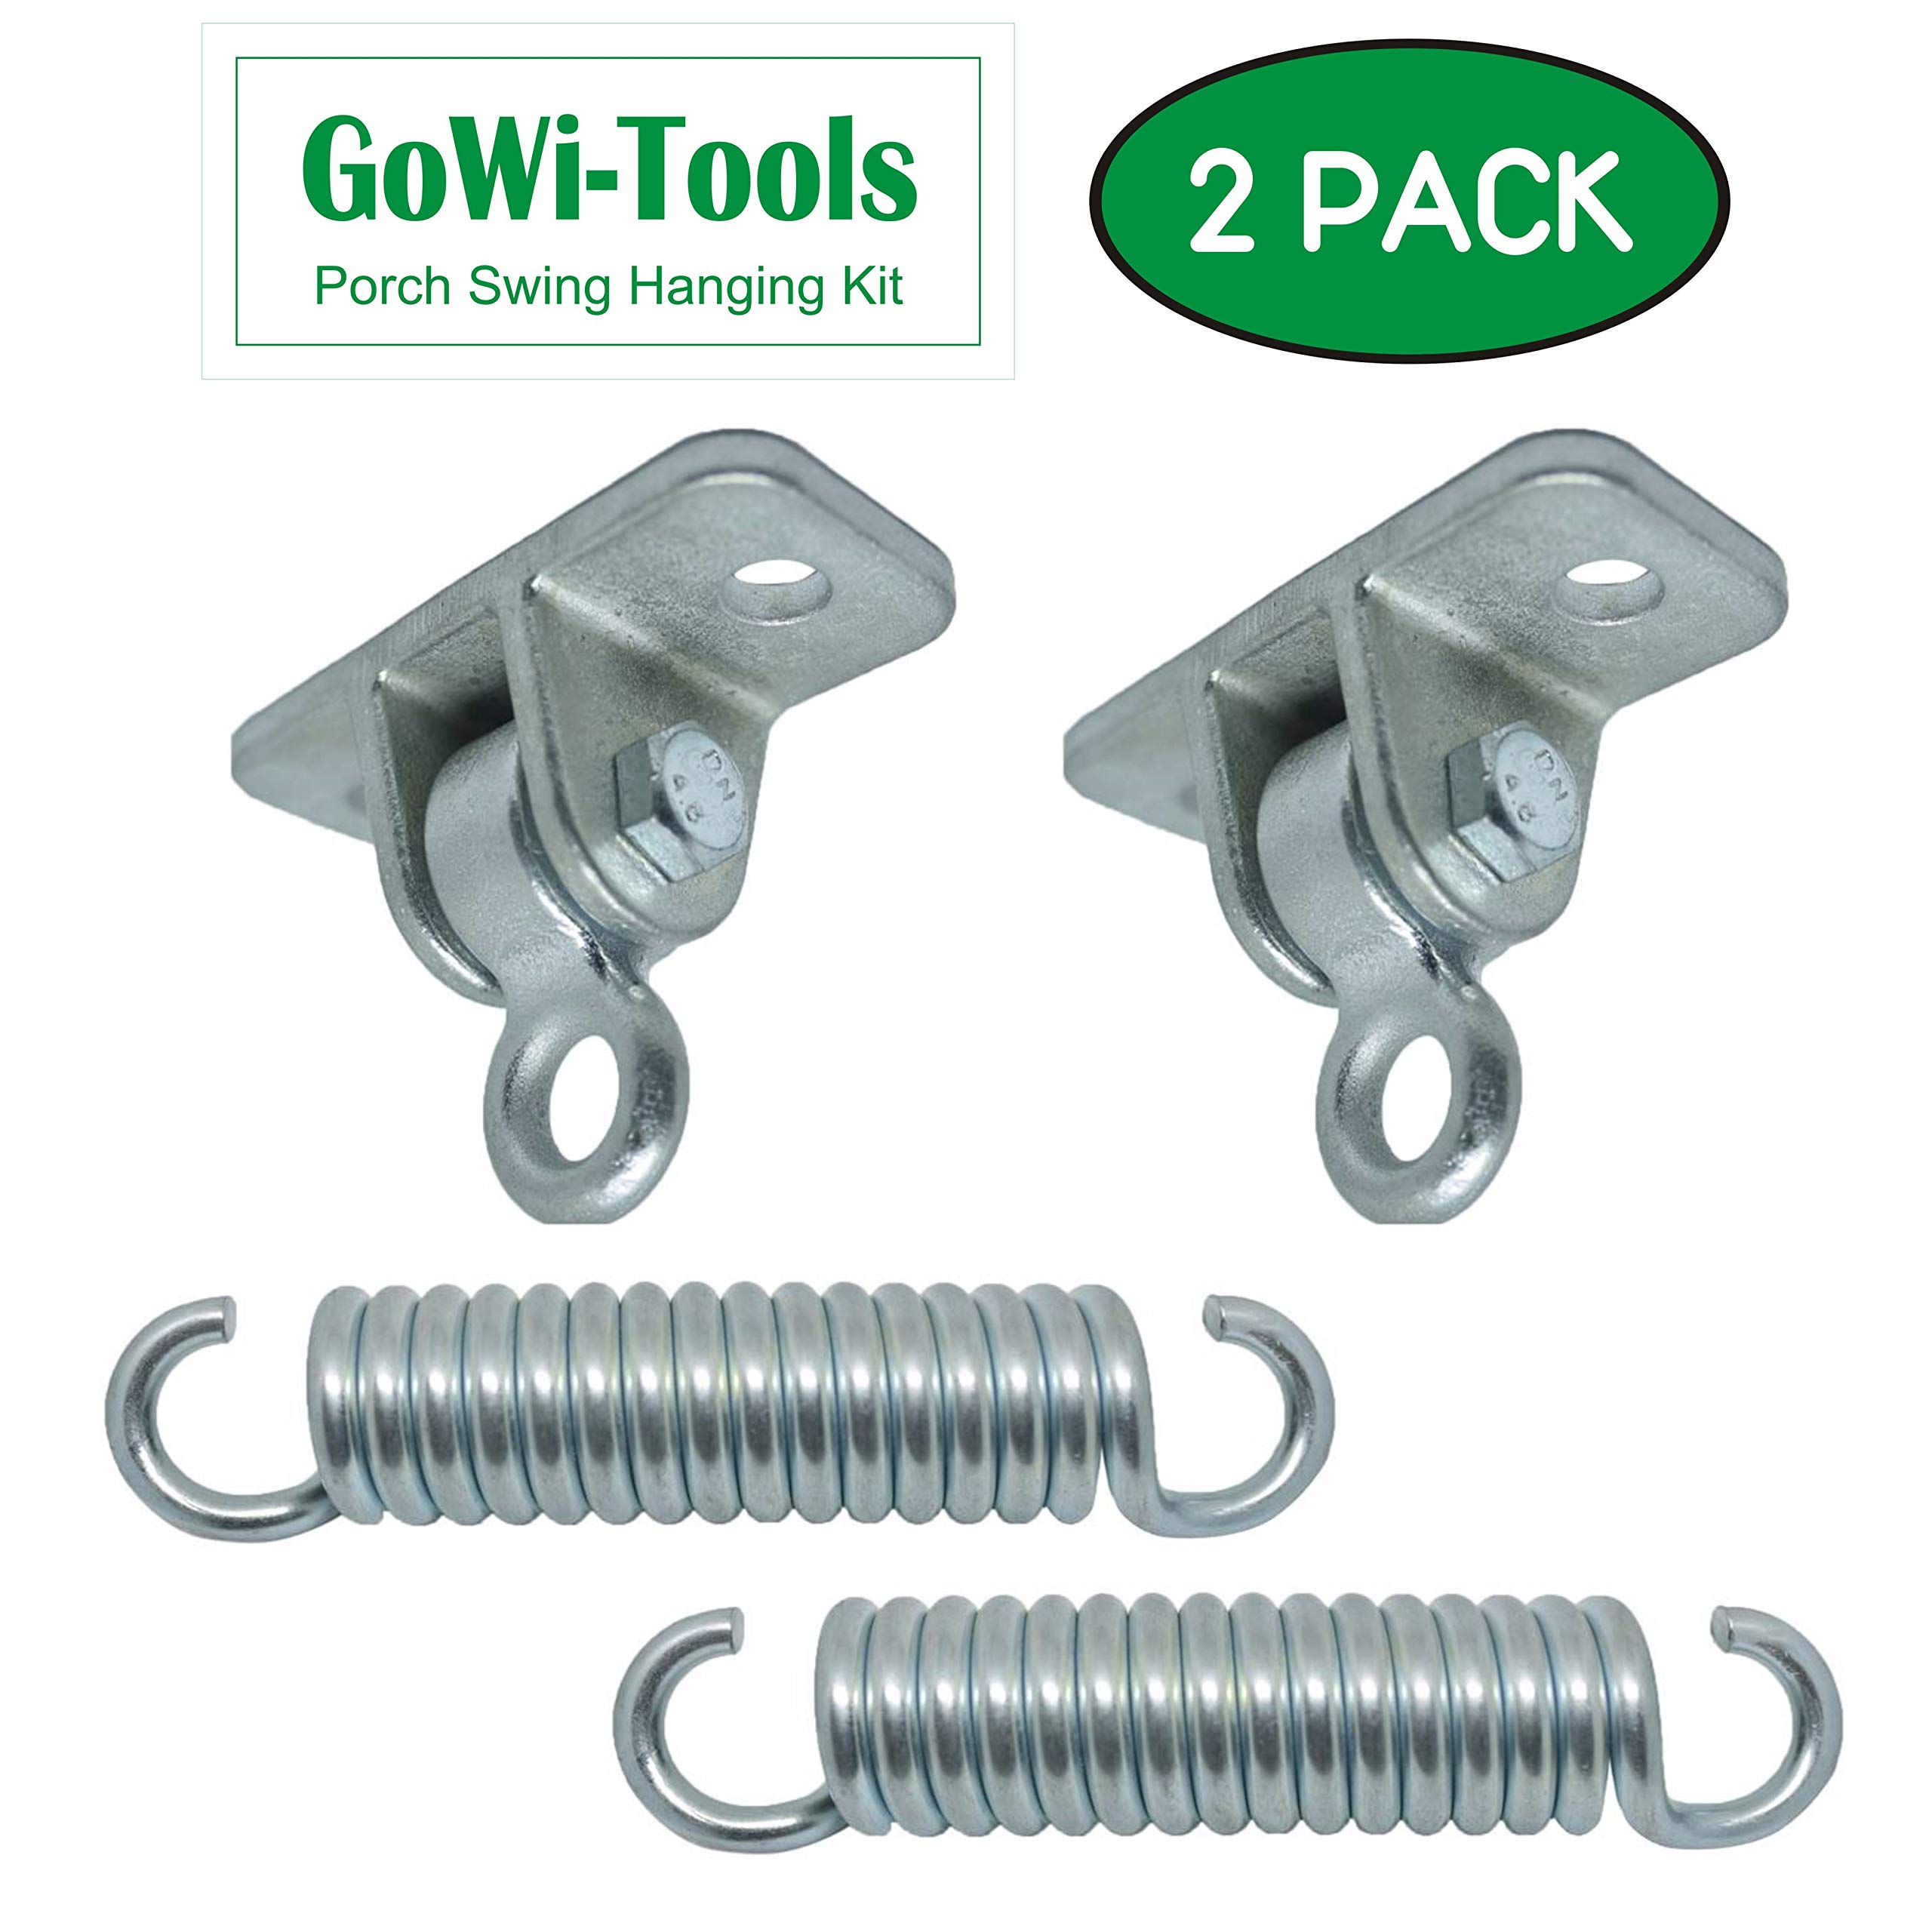 GoWi-Tools Porch Swing Hanging Kit Indoor & Outdoor, Up to 1400 lbs, (2) Heavy Duty Cast Iron Ceiling Mount, (2) 8'' Springs, Use ½ Bolts/Screw, for Hammock Chairs, Wooden Porch - Not Included Bolts by GoWi-Tools